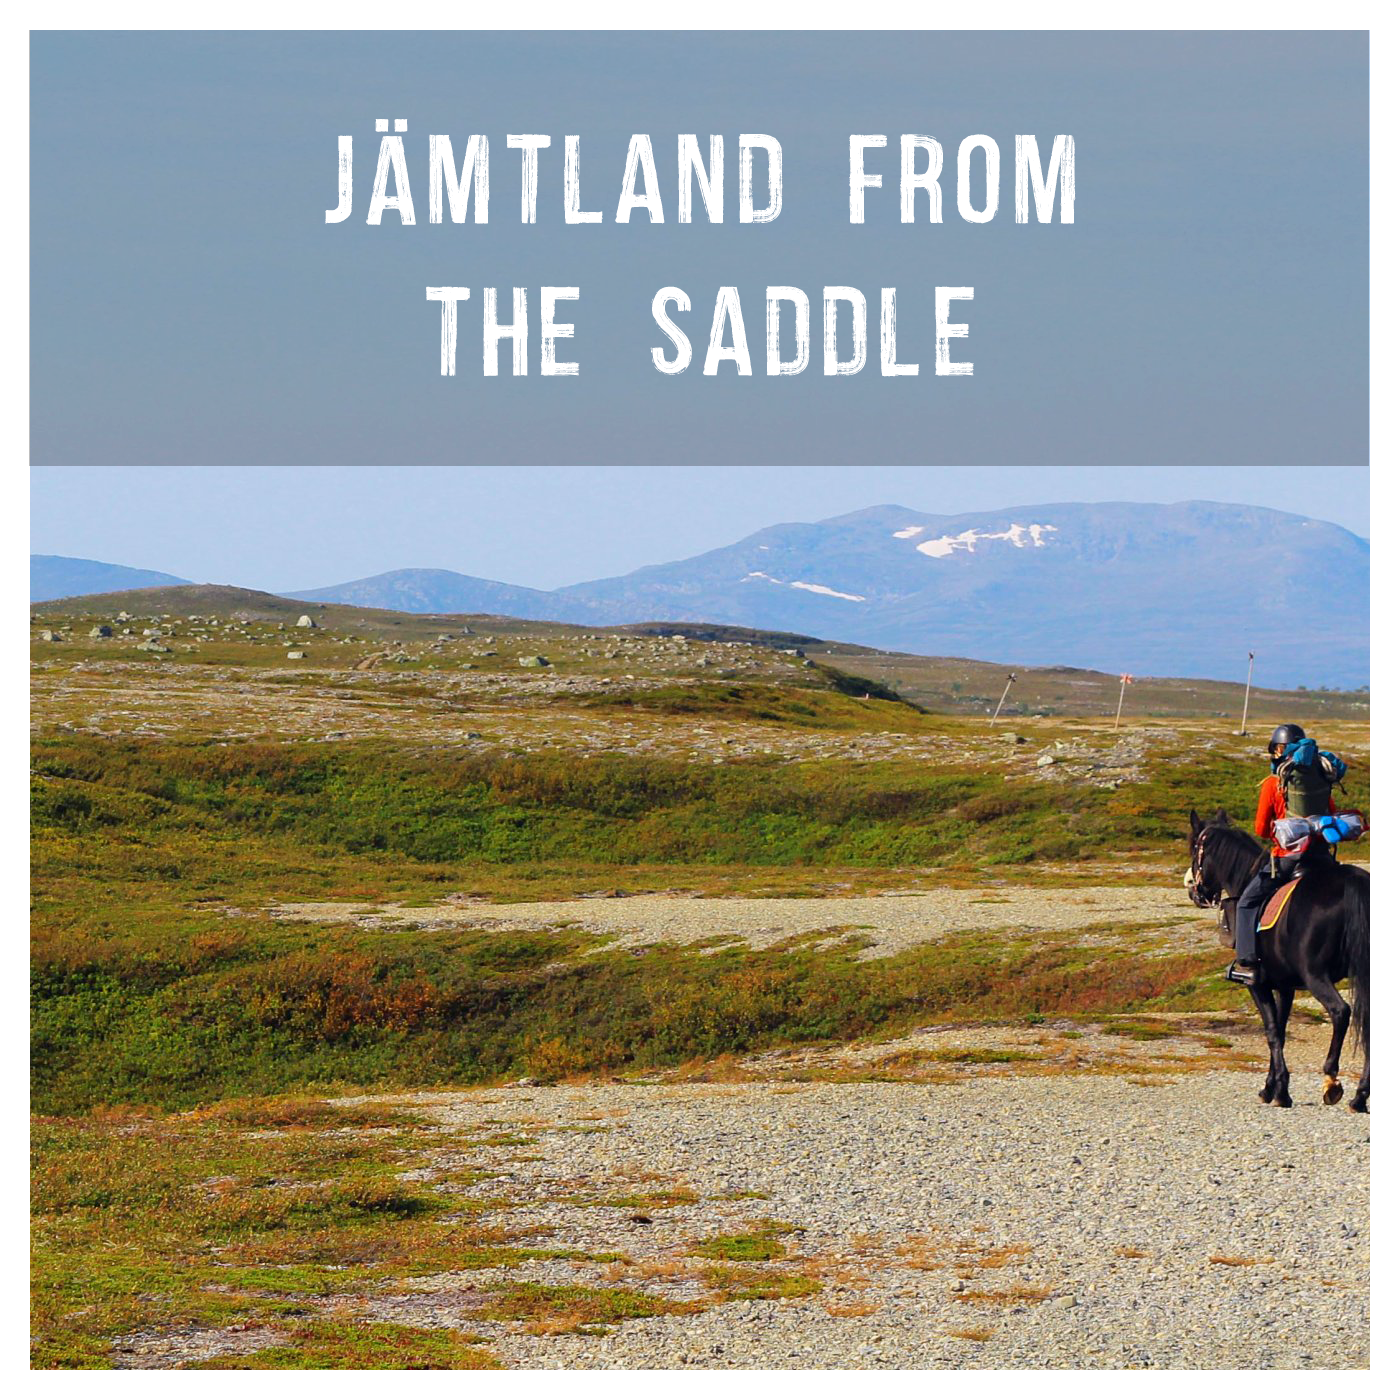 Jamtland by horse